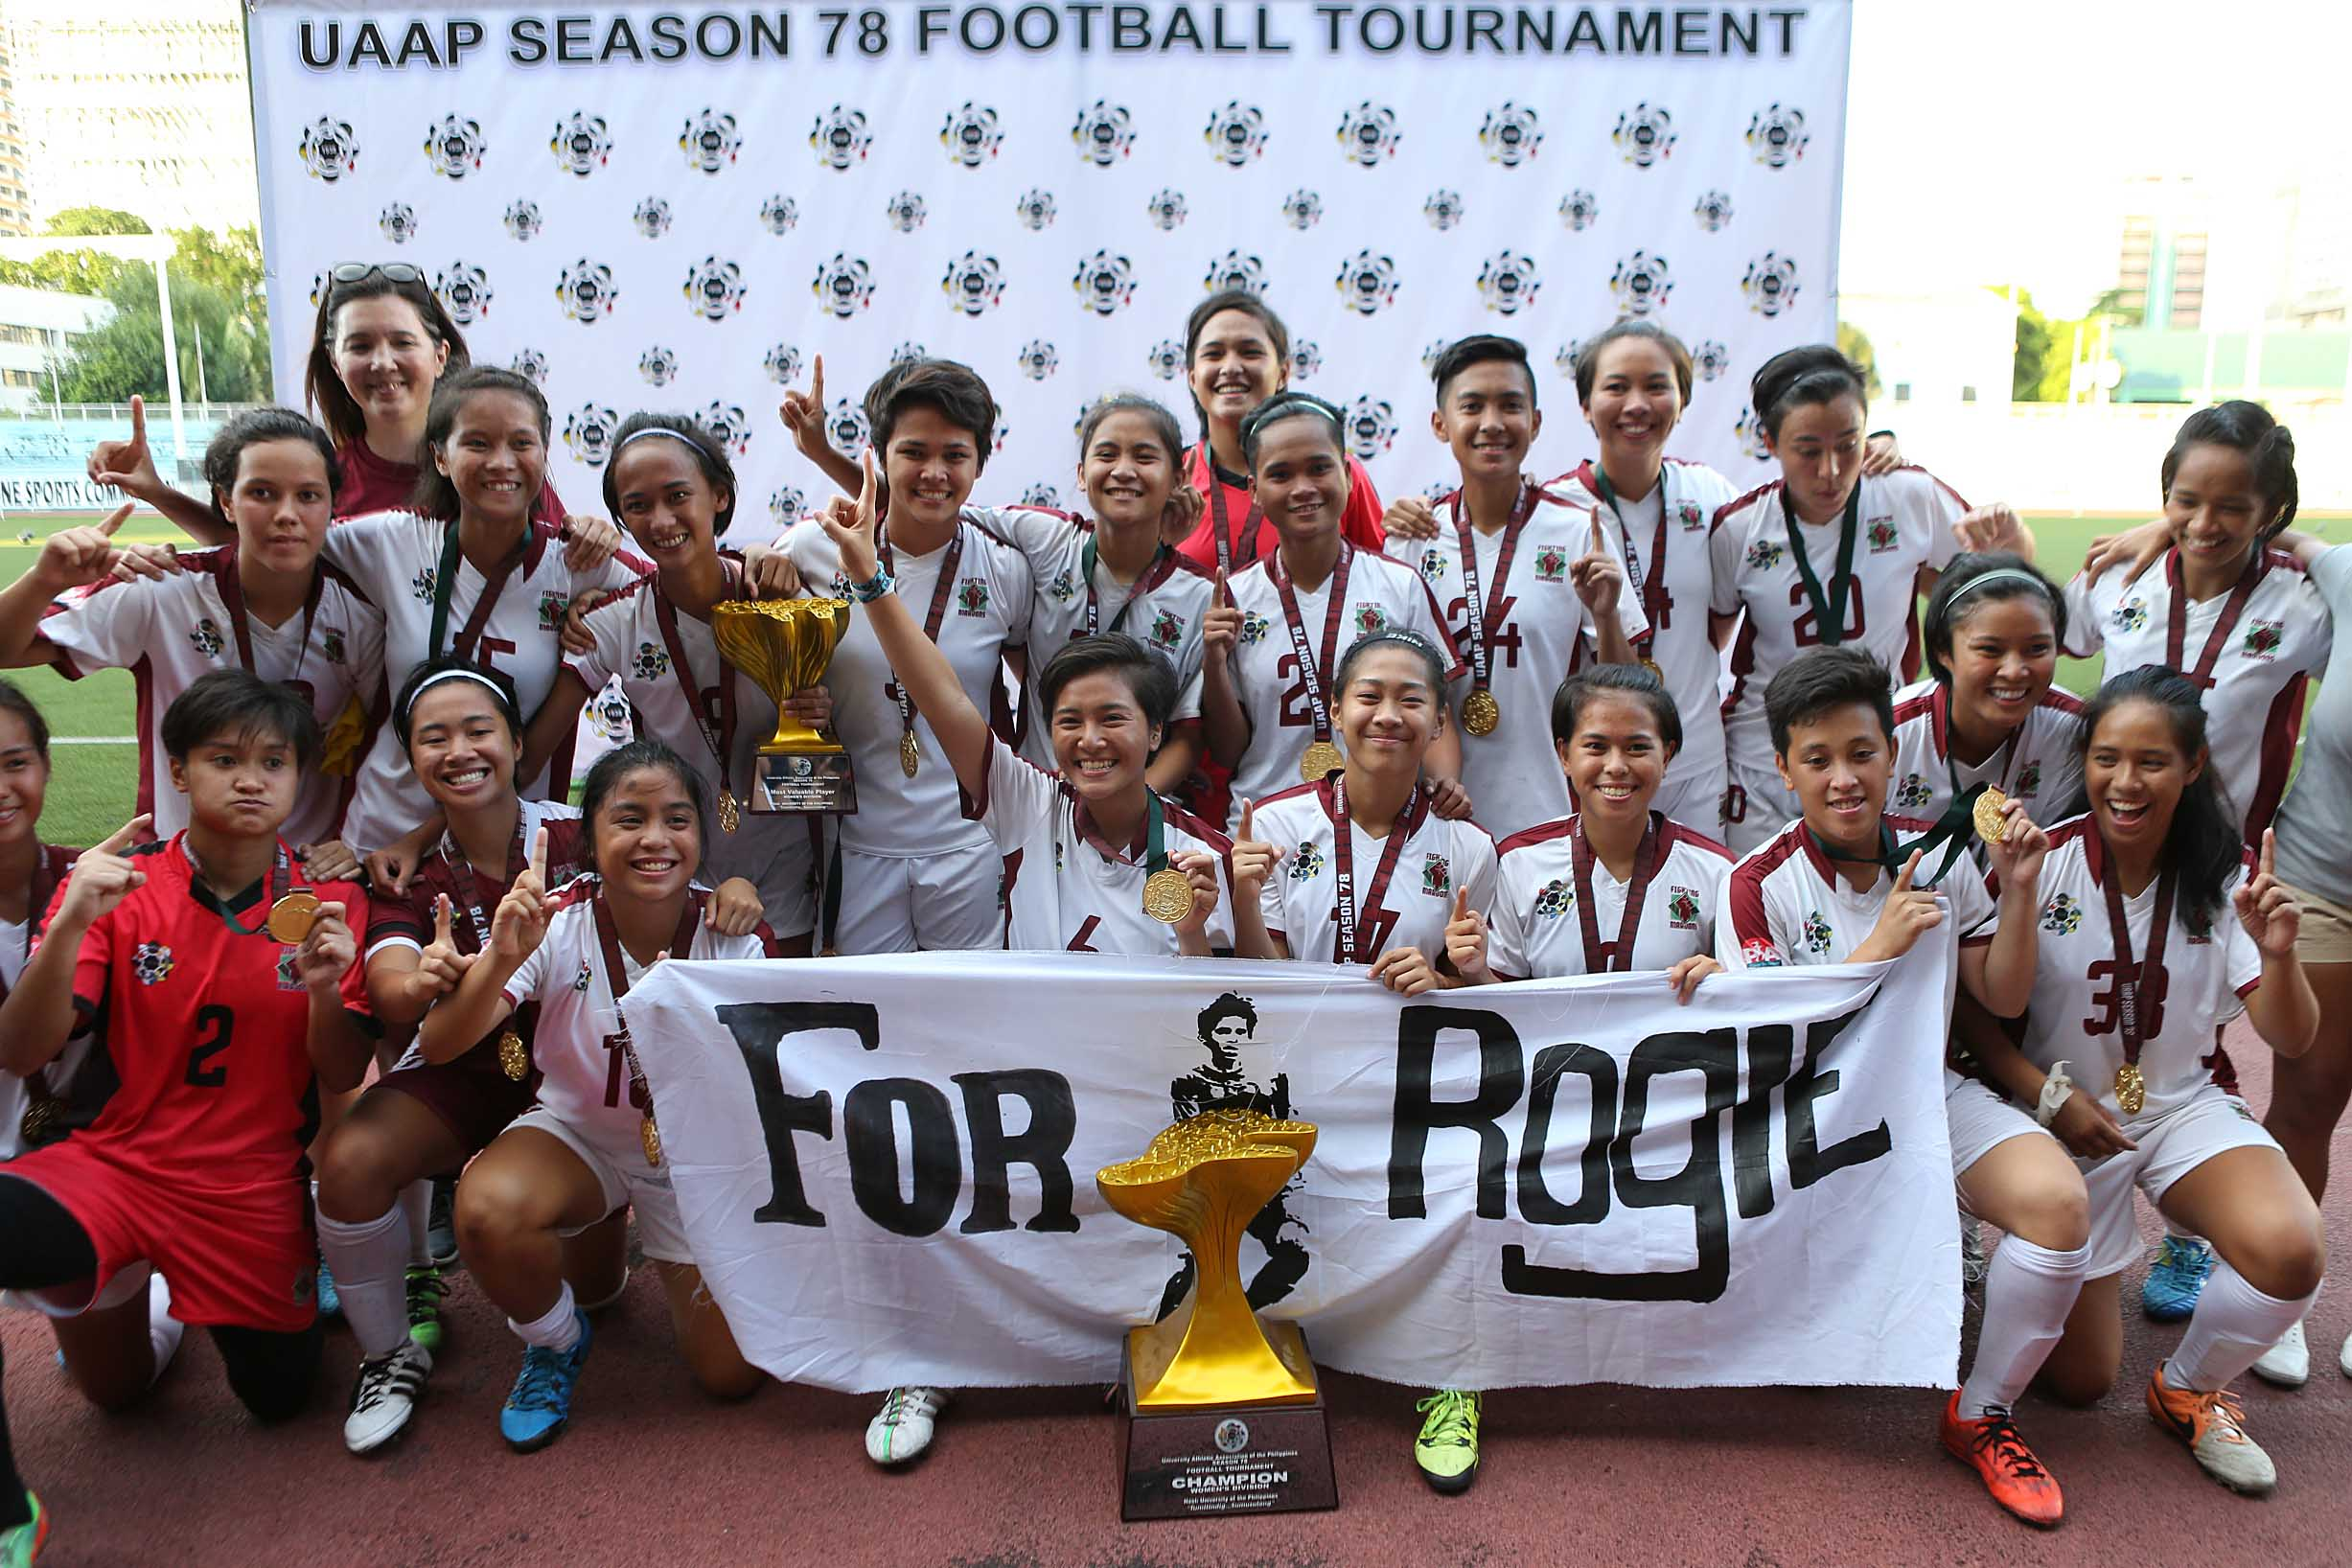 FOR ROGIE. The UP women's football team gives respect for Rogie Maglinas, the UP men's player who died earlier this year from cancer, after winning its first ever UAAP women's football title. File photo by Josh Albelda/ Rappler